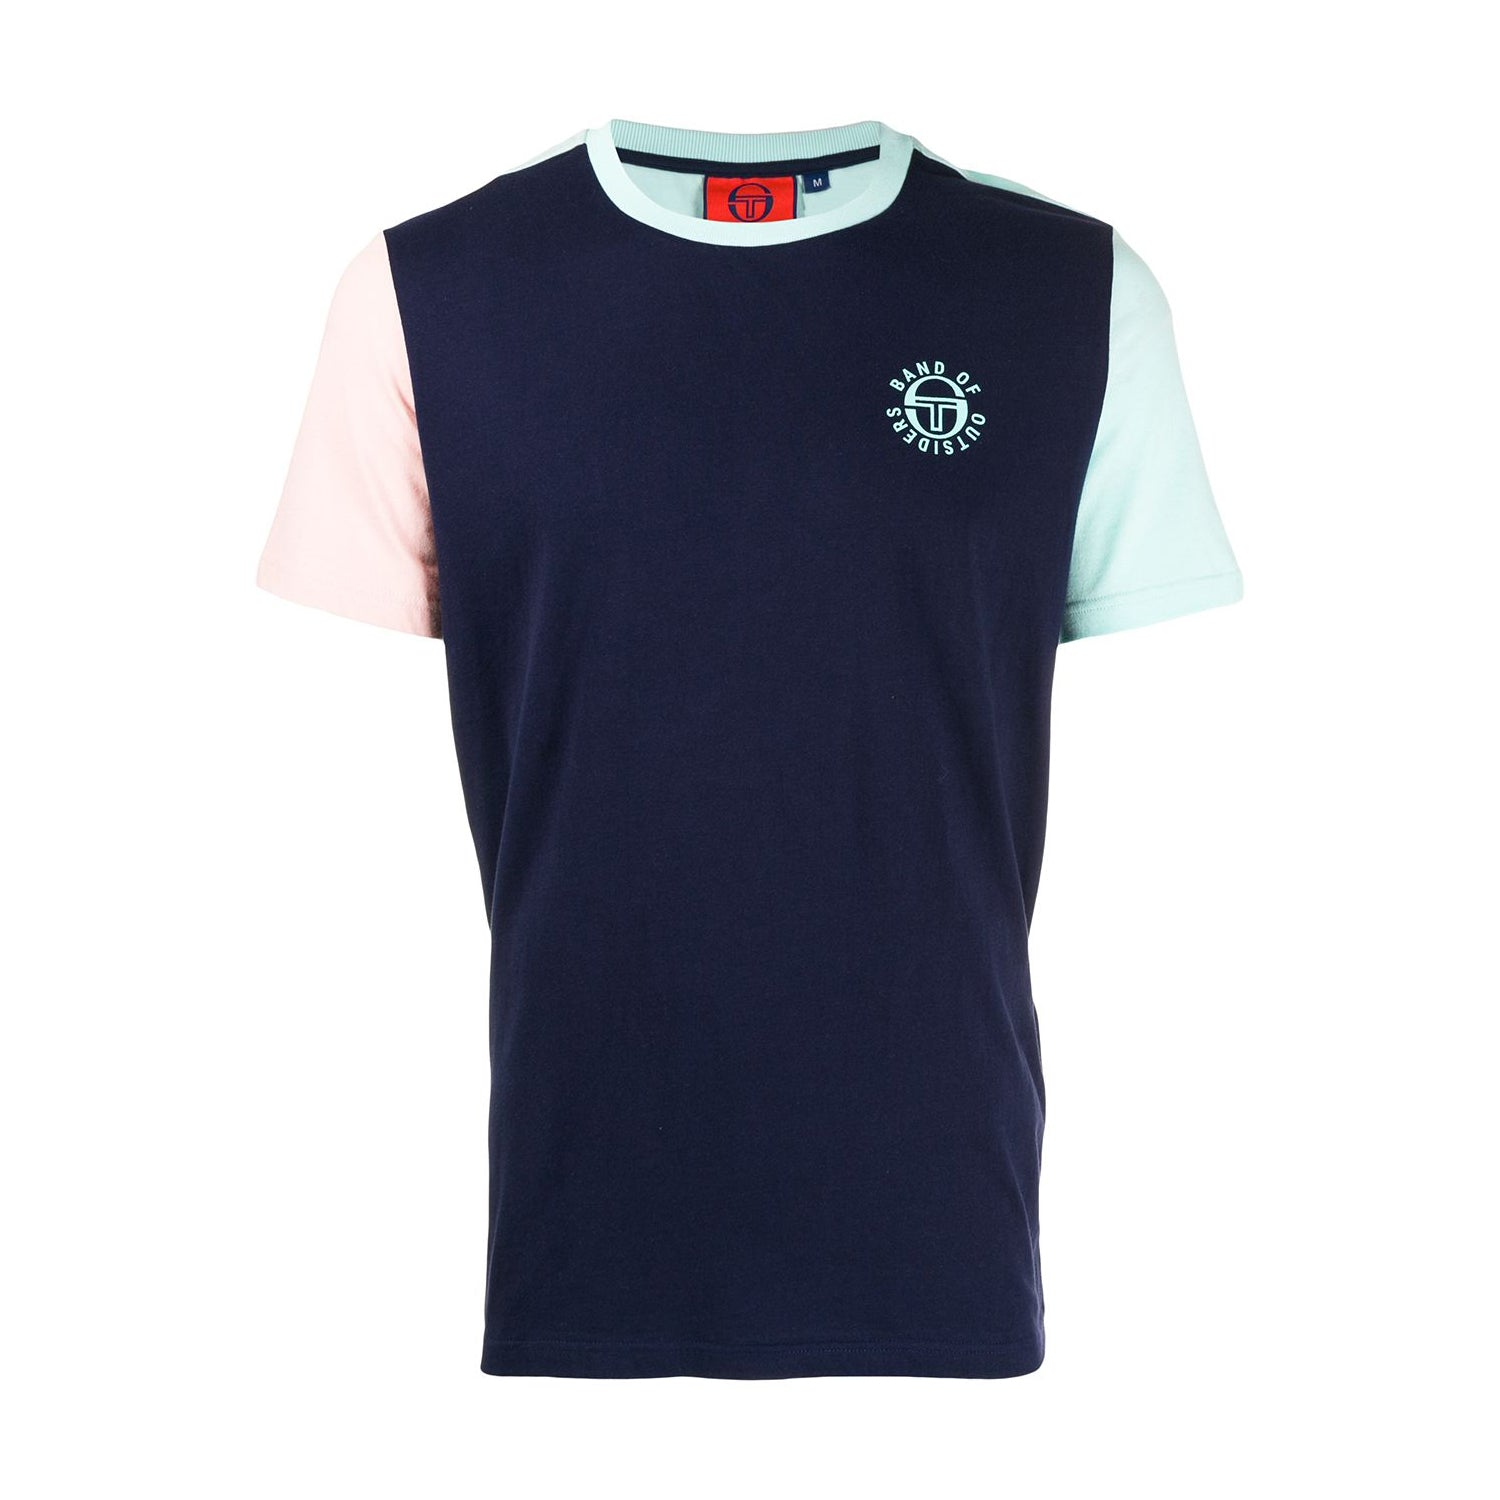 SERGIO TACCHINI X BAND OF OUTSIDERS COLOR BLOCK T-SHIRT NAVY